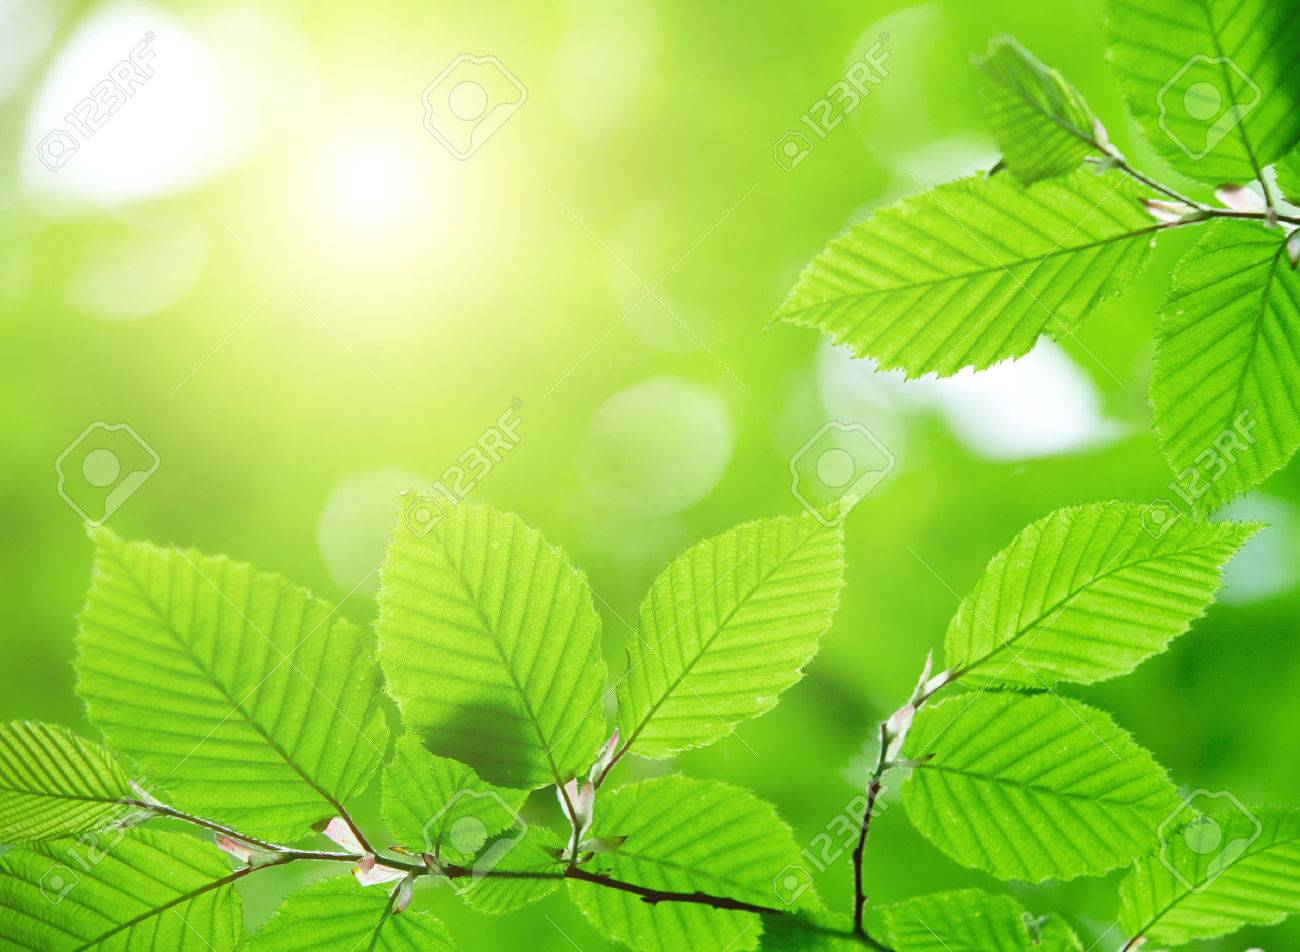 green leaves background in sunny day Stock Photo - 39768911